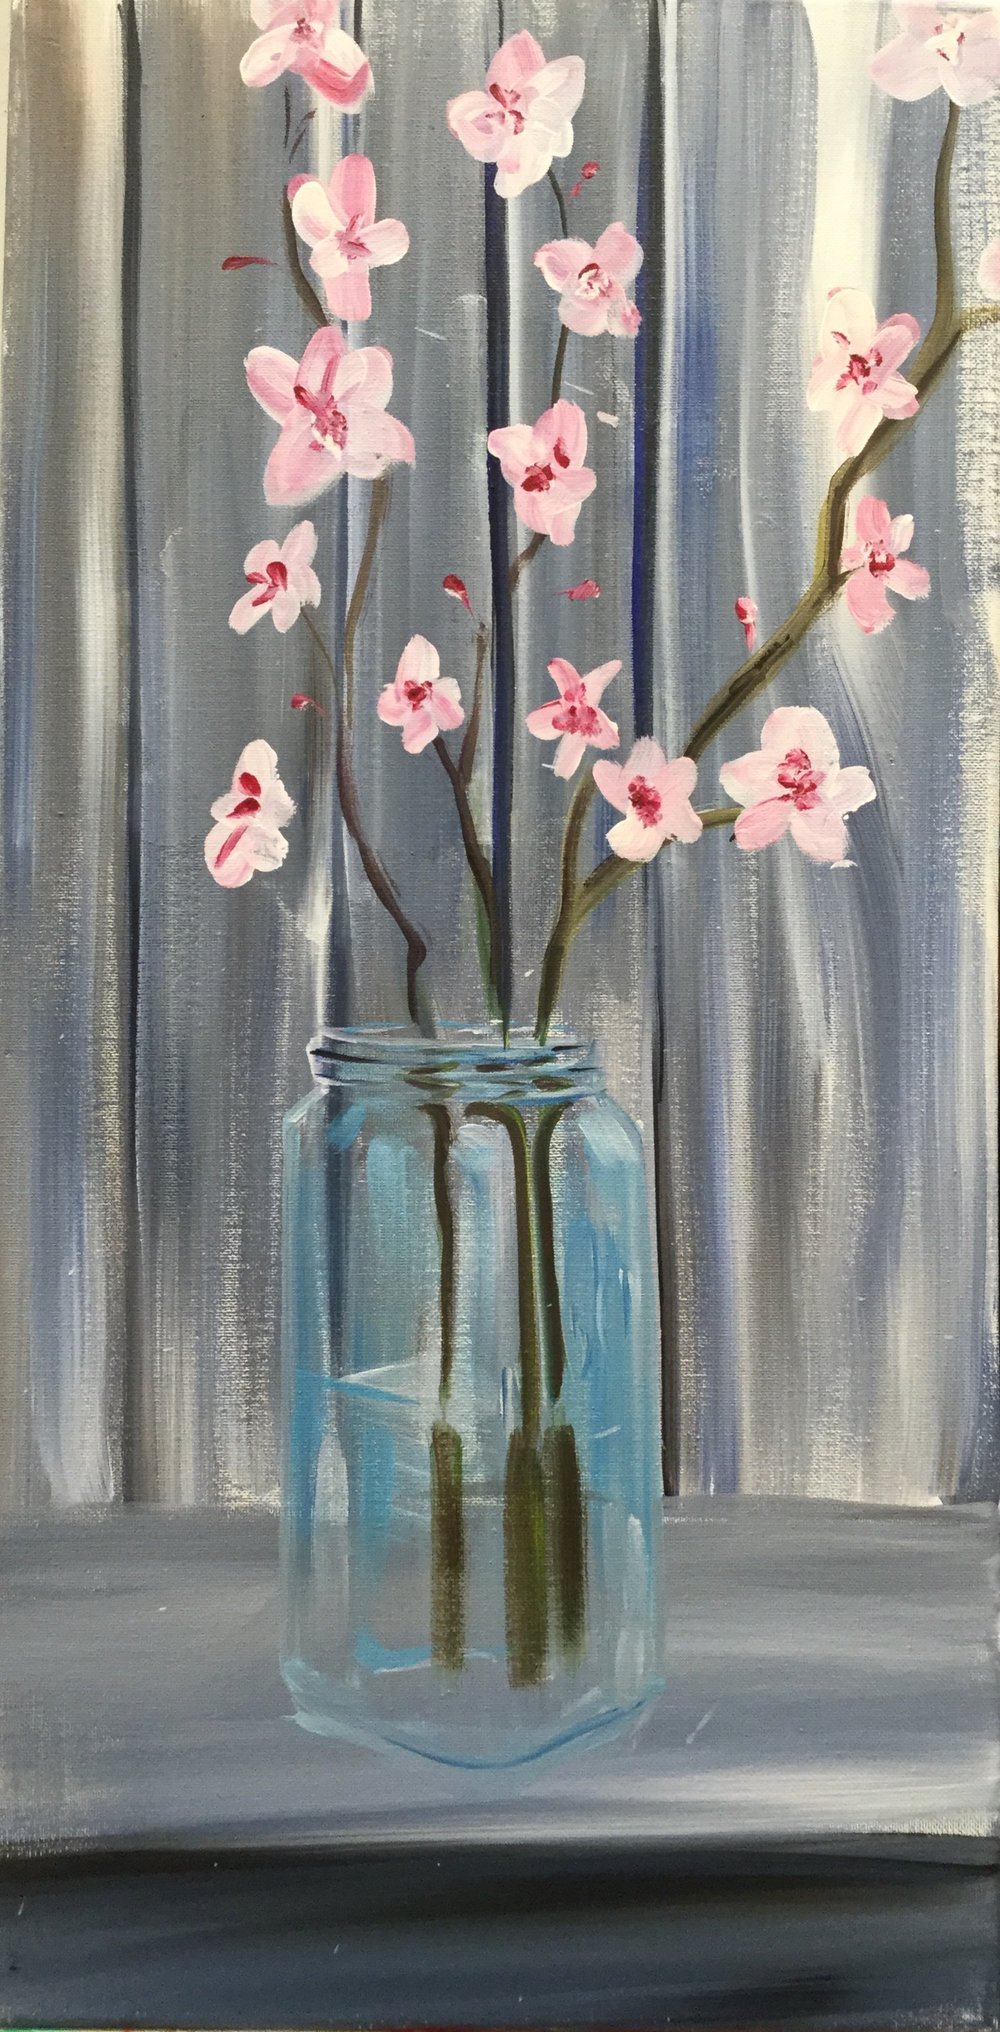 Paint Night: Shabby Chic - You can paint a mason jar of blossoms - step by step with local artist Adam Meikle.Level: EasyPrice: $40/ guest